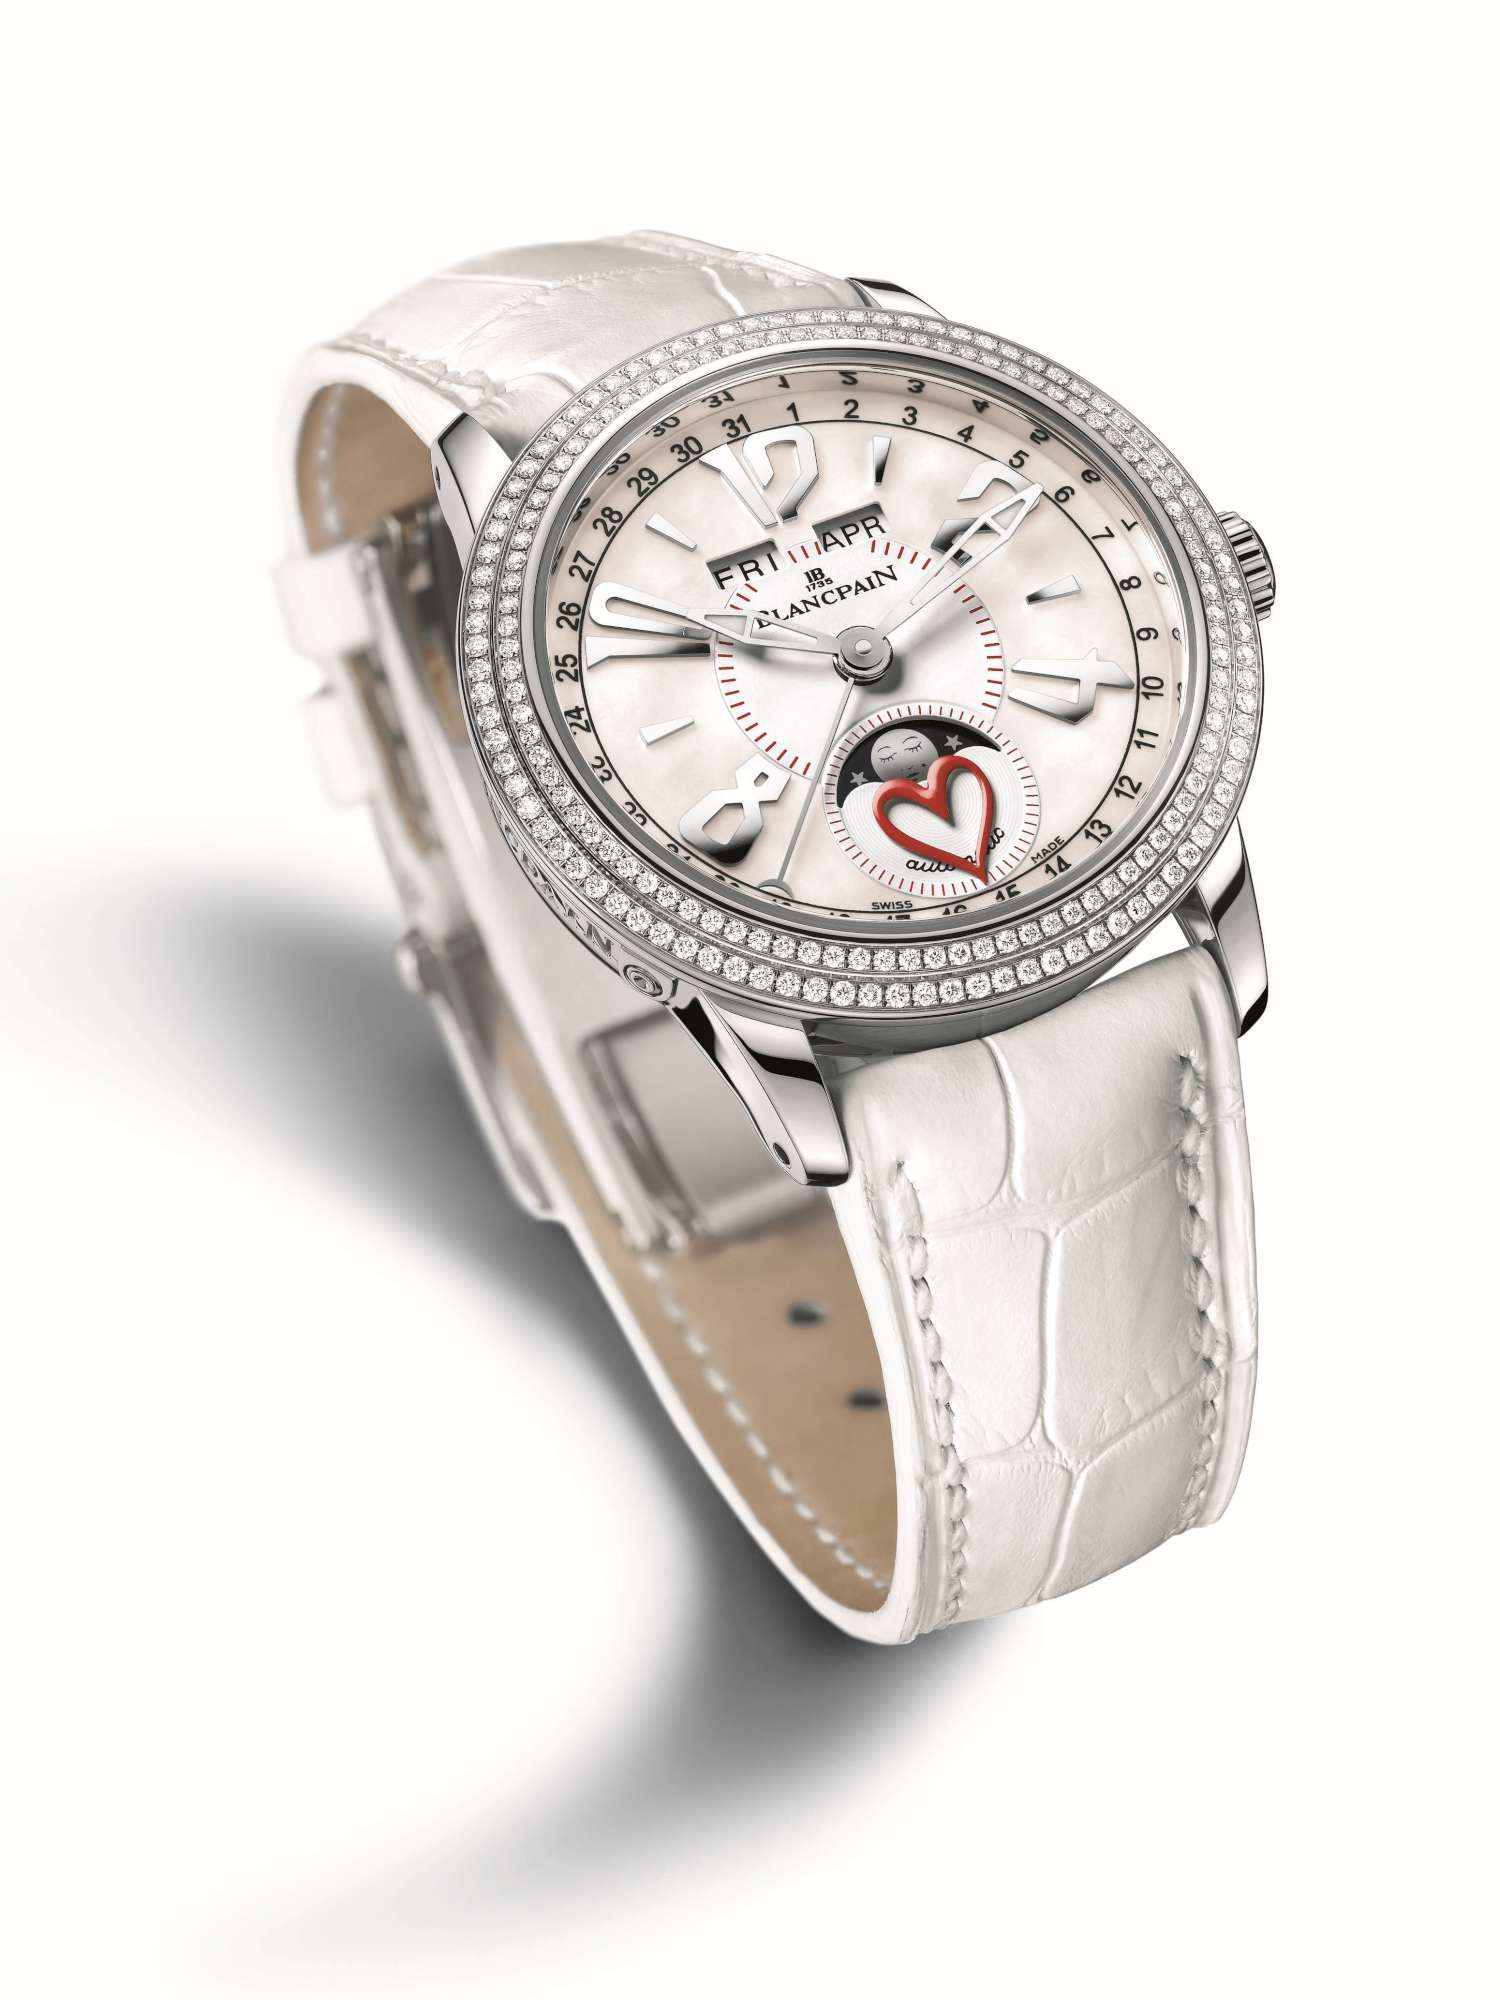 rose gold image from ora watch tissot valentine red watches ladies bella